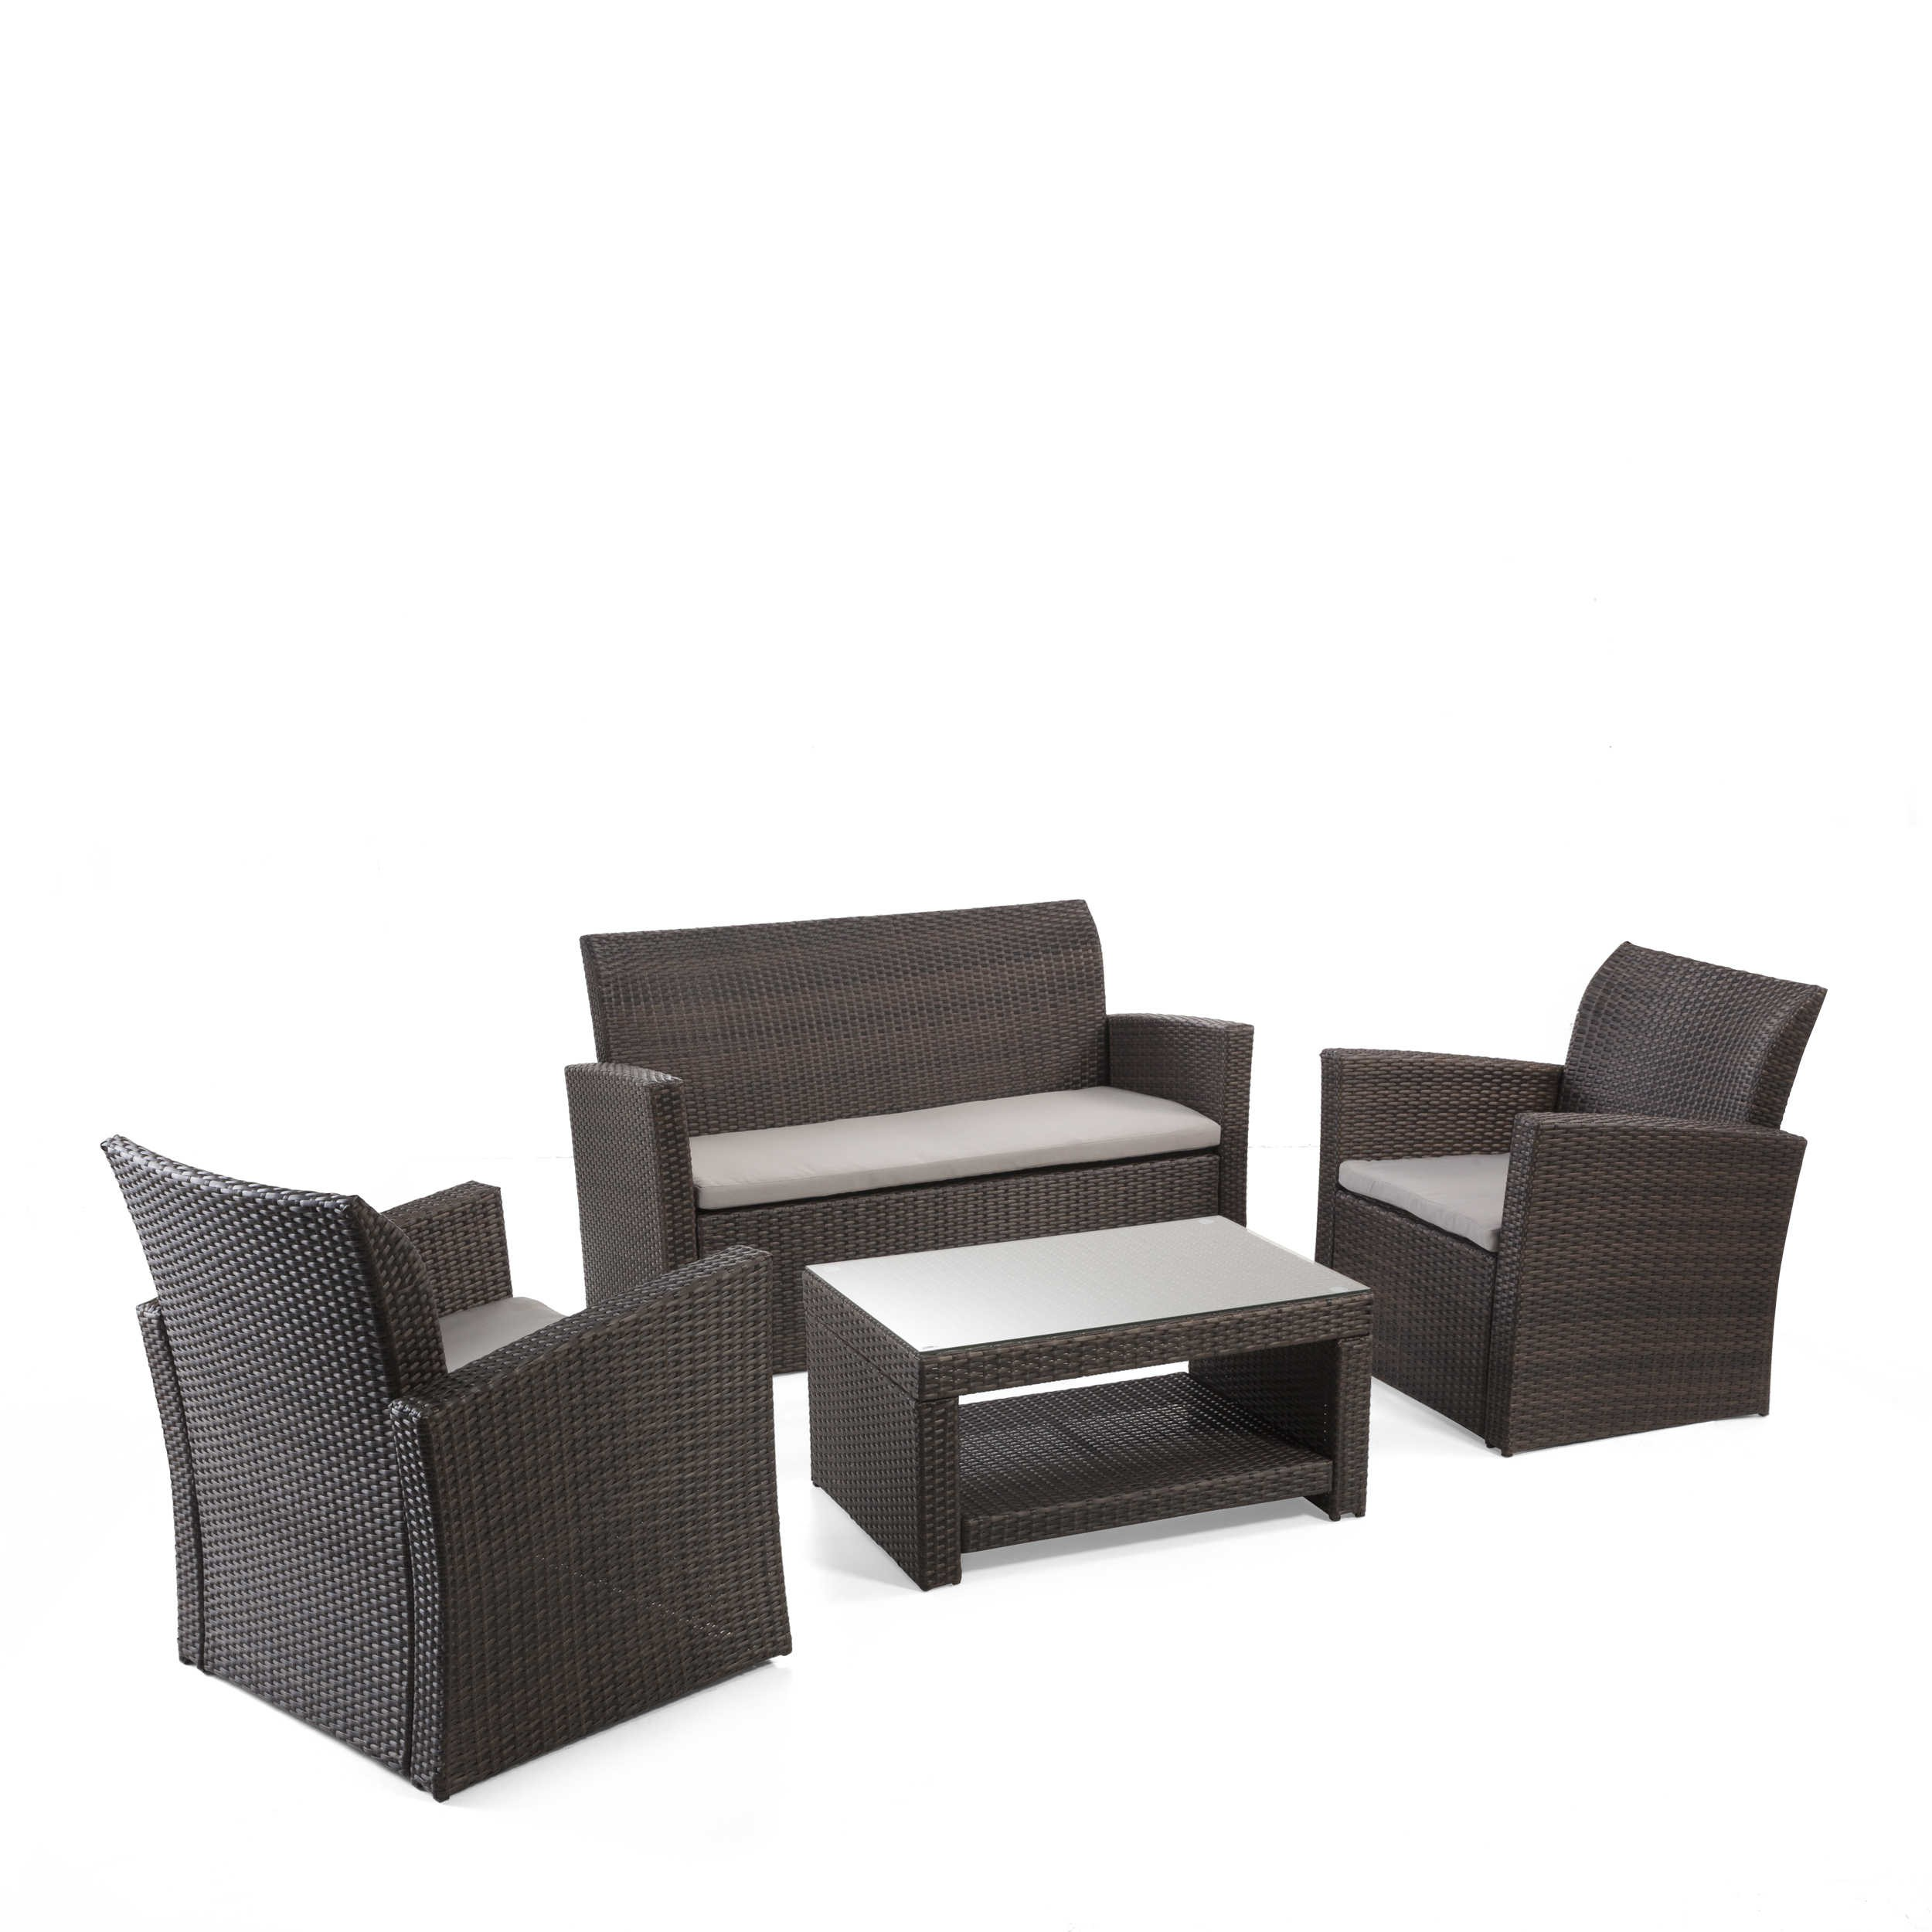 loungem bel set cannes 4tlg polyrattan defactodeal. Black Bedroom Furniture Sets. Home Design Ideas